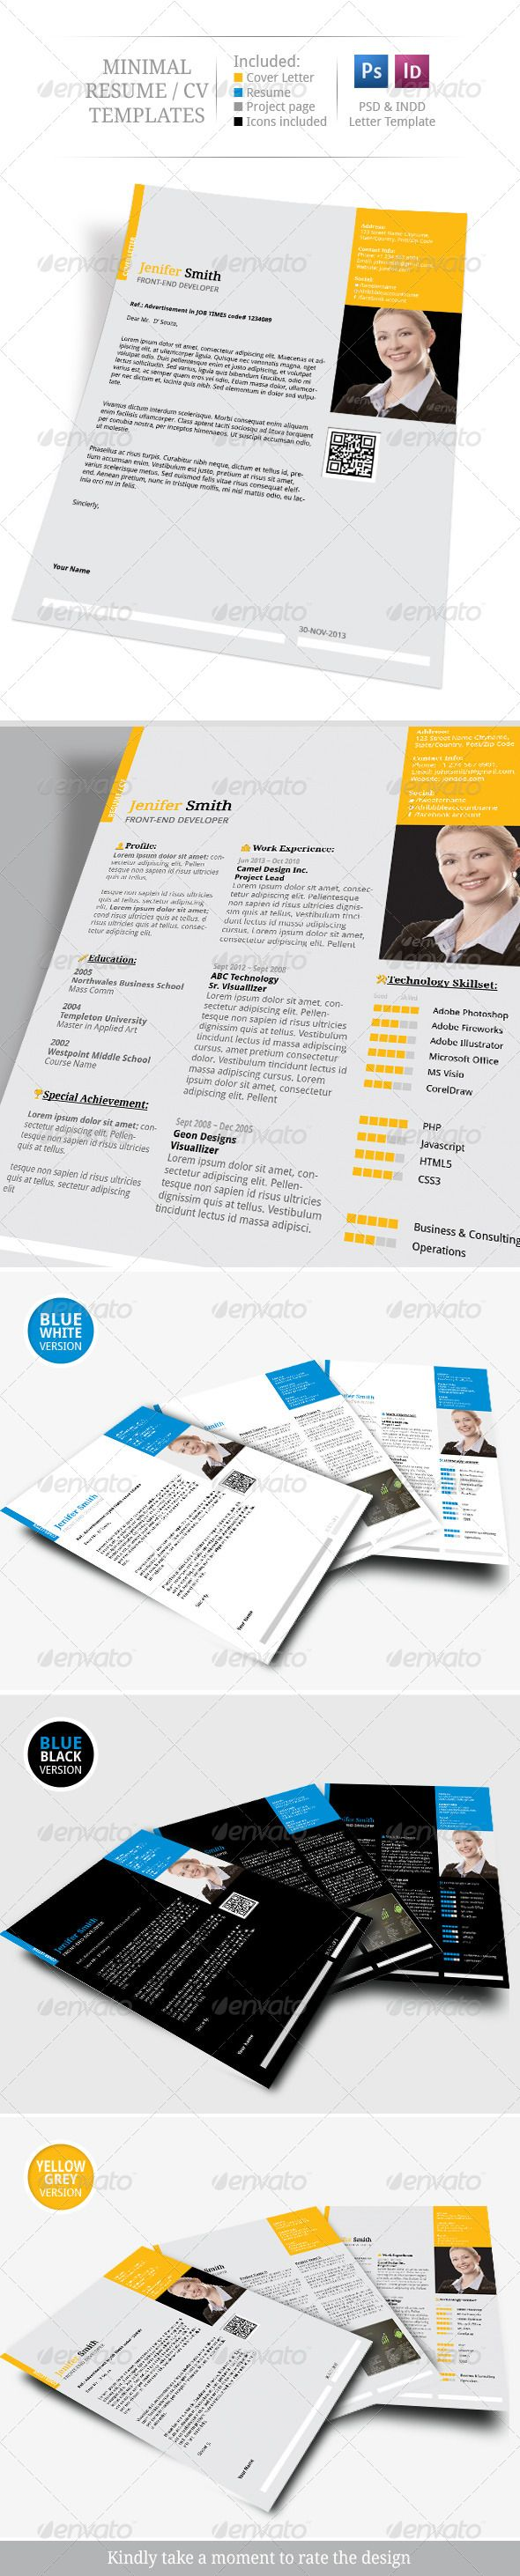 101 best images about job hunt on pinterest cover letters